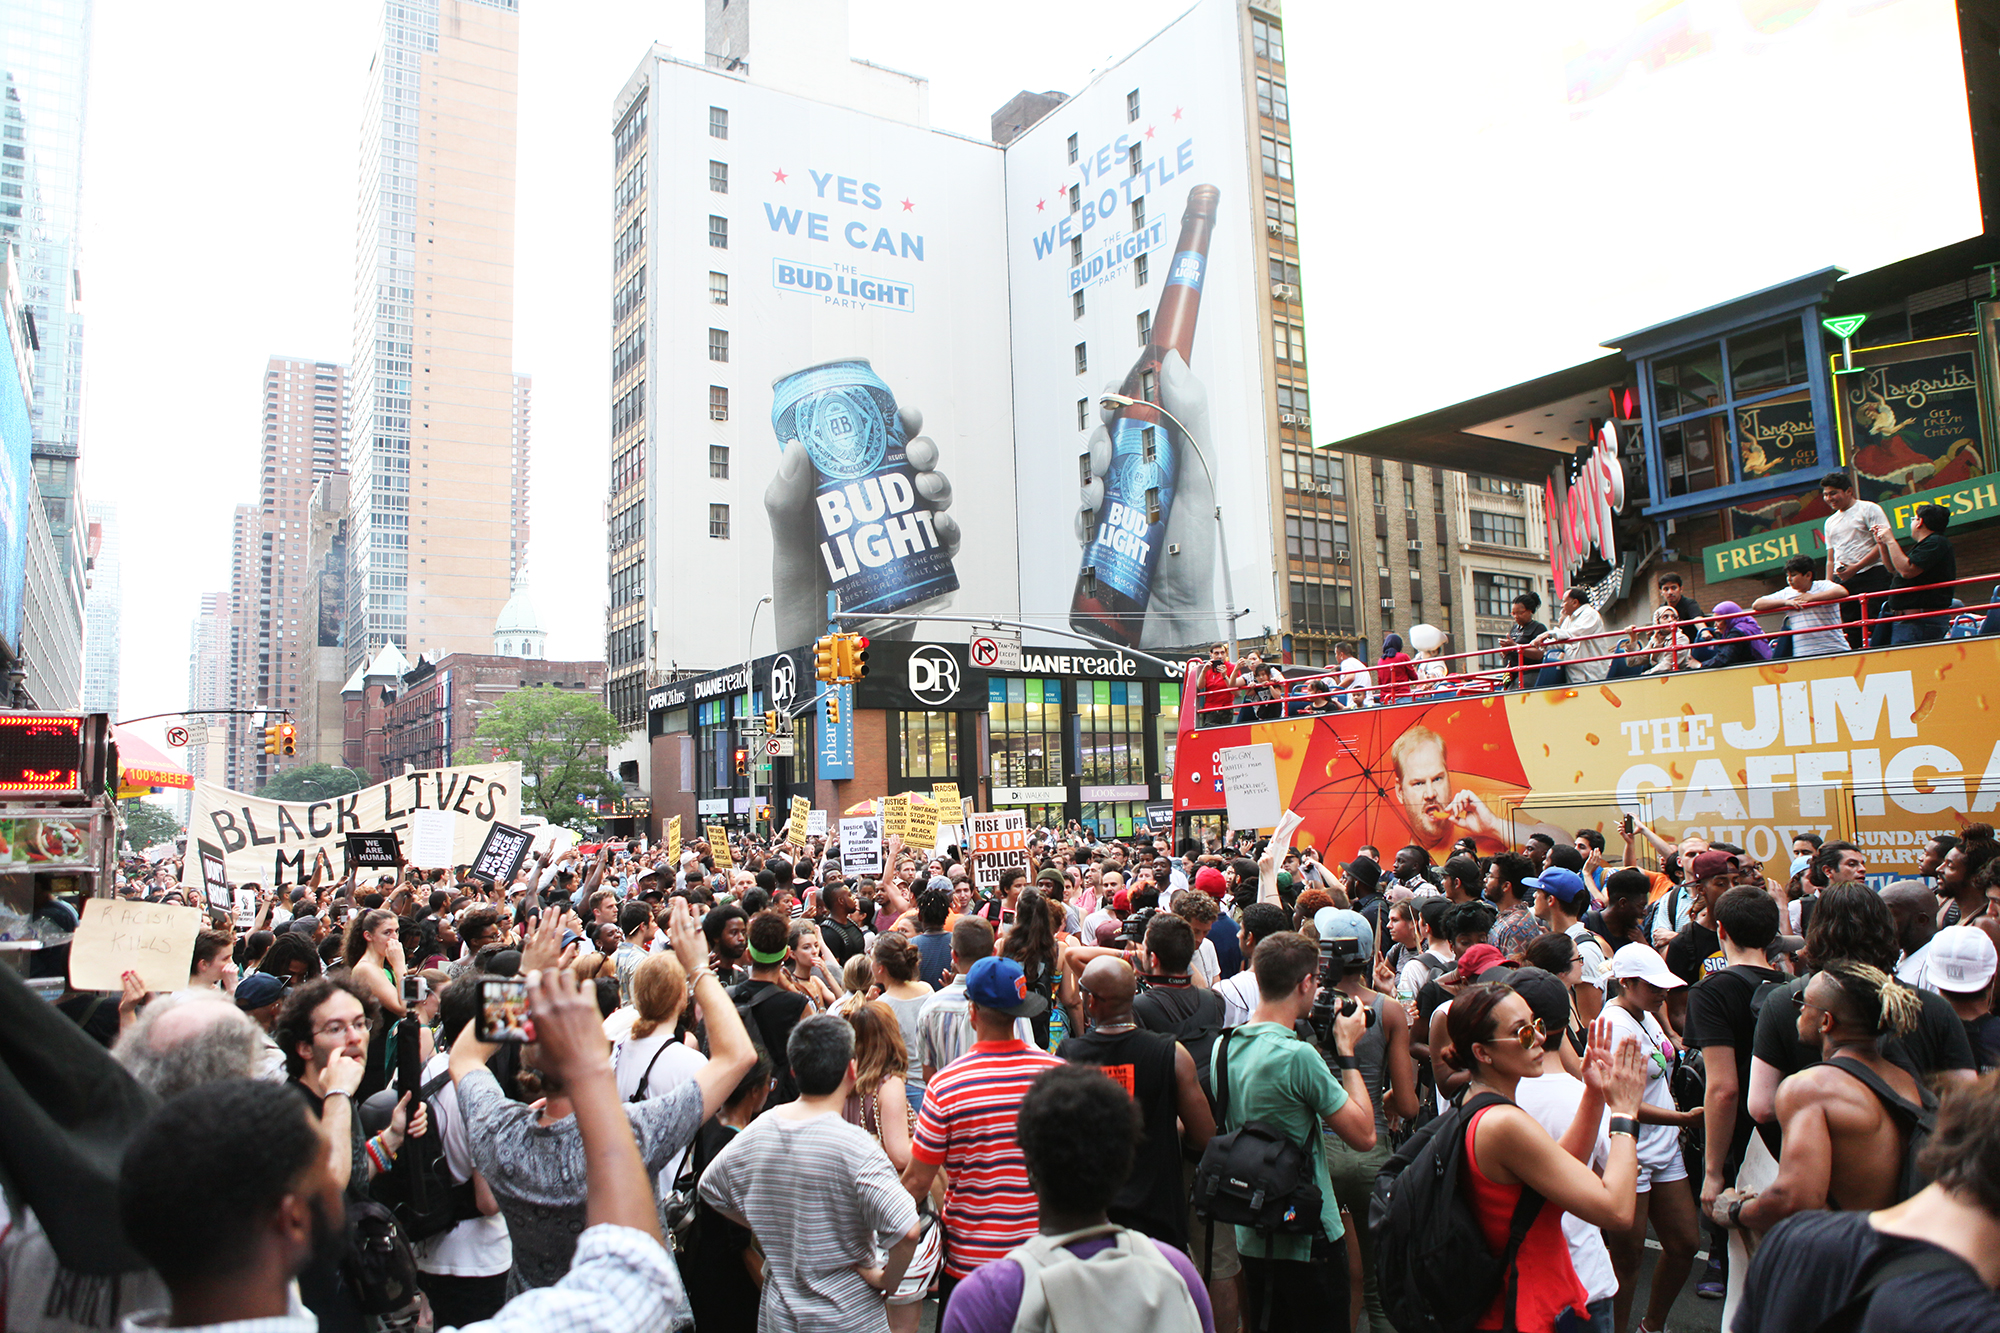 Protesters in Times Square in New York City, on July 7, 2016.